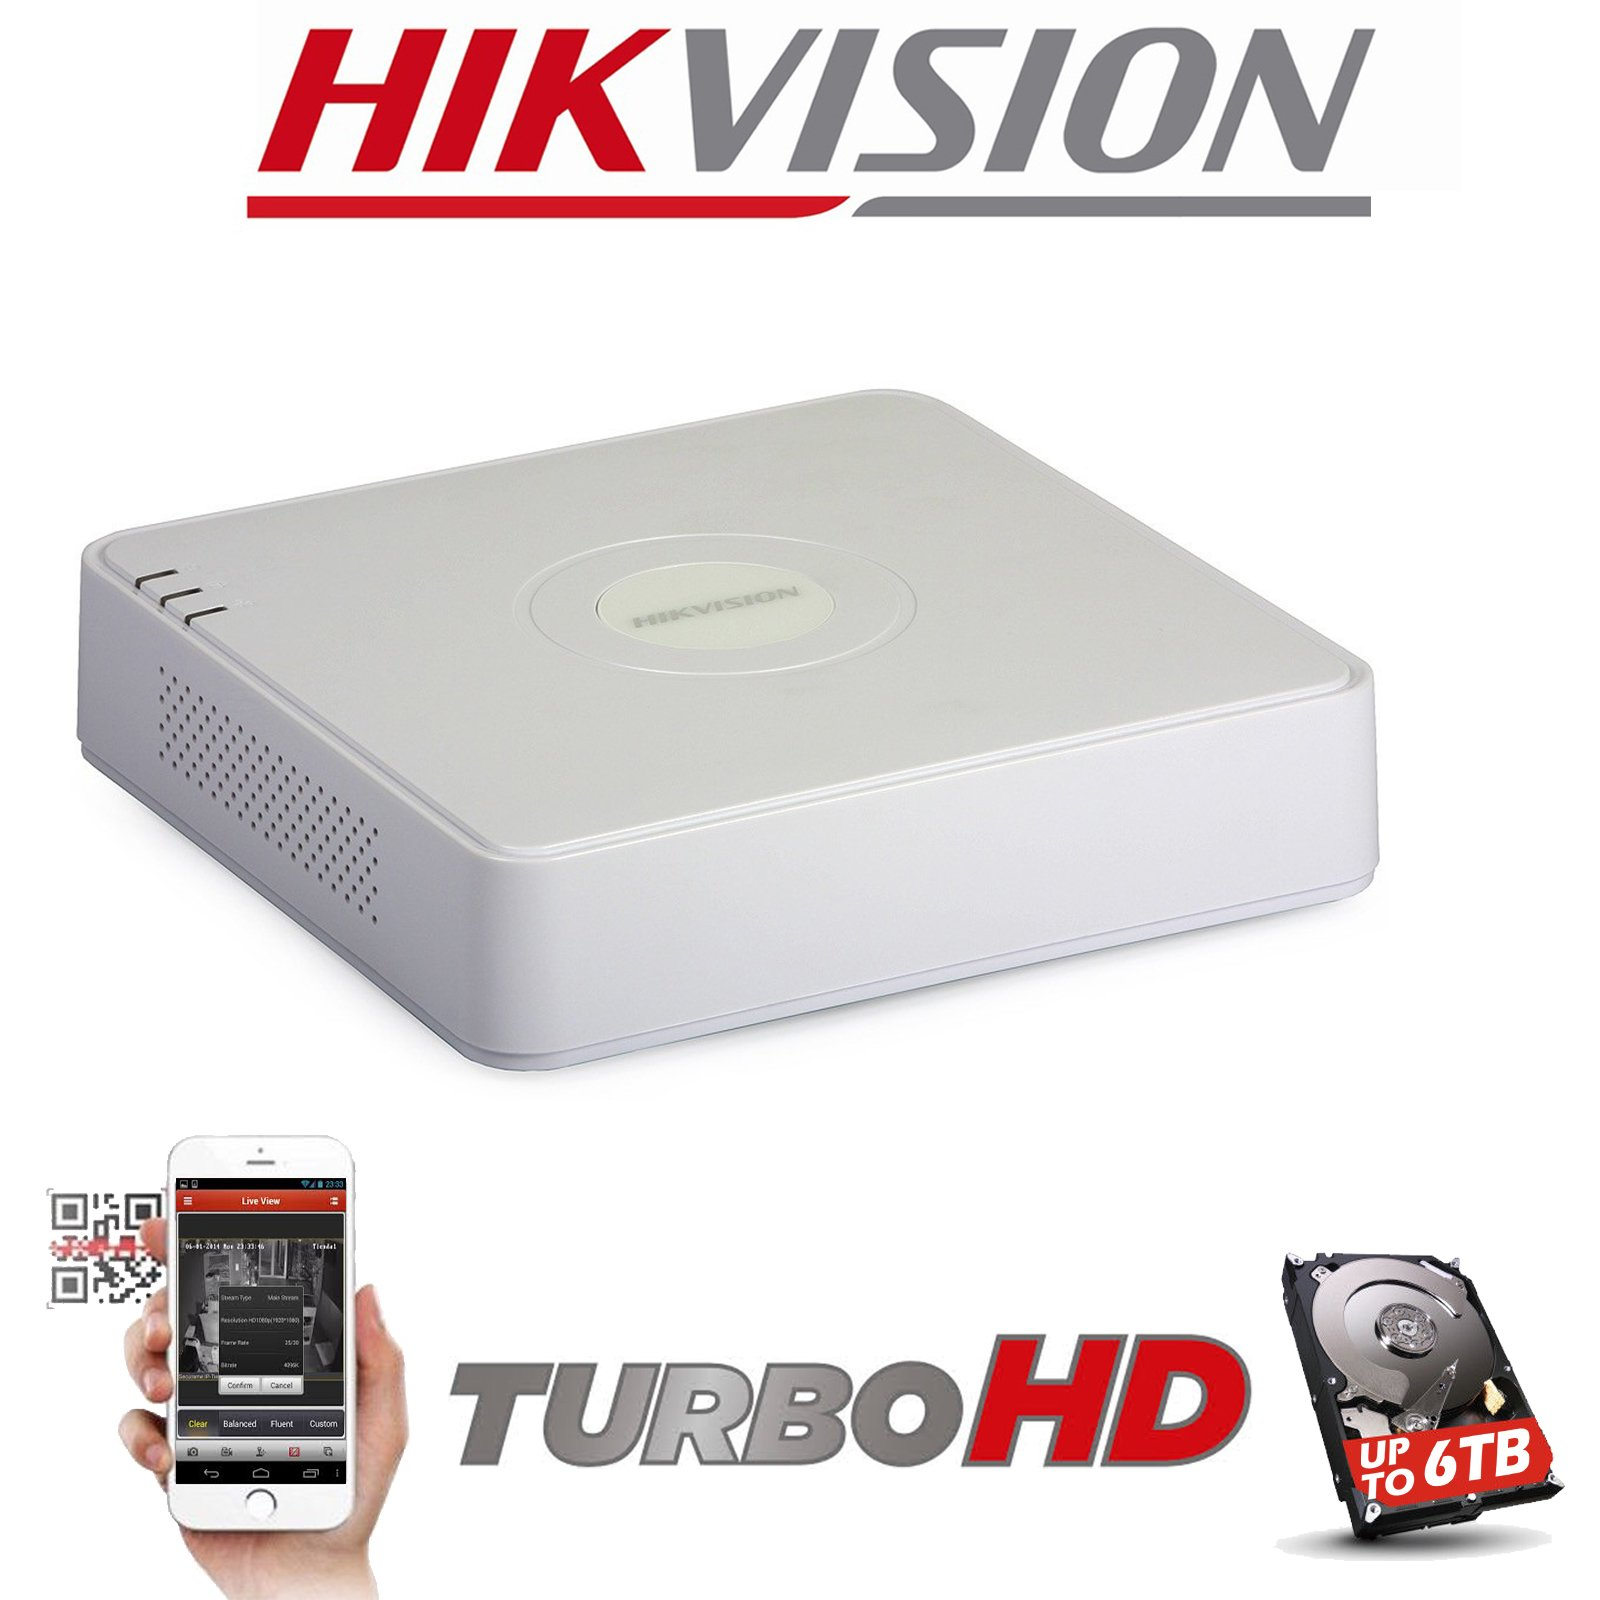 4CH HIKVISION DVR HDMI TURBO 1080P DS-7104HQHI-K1